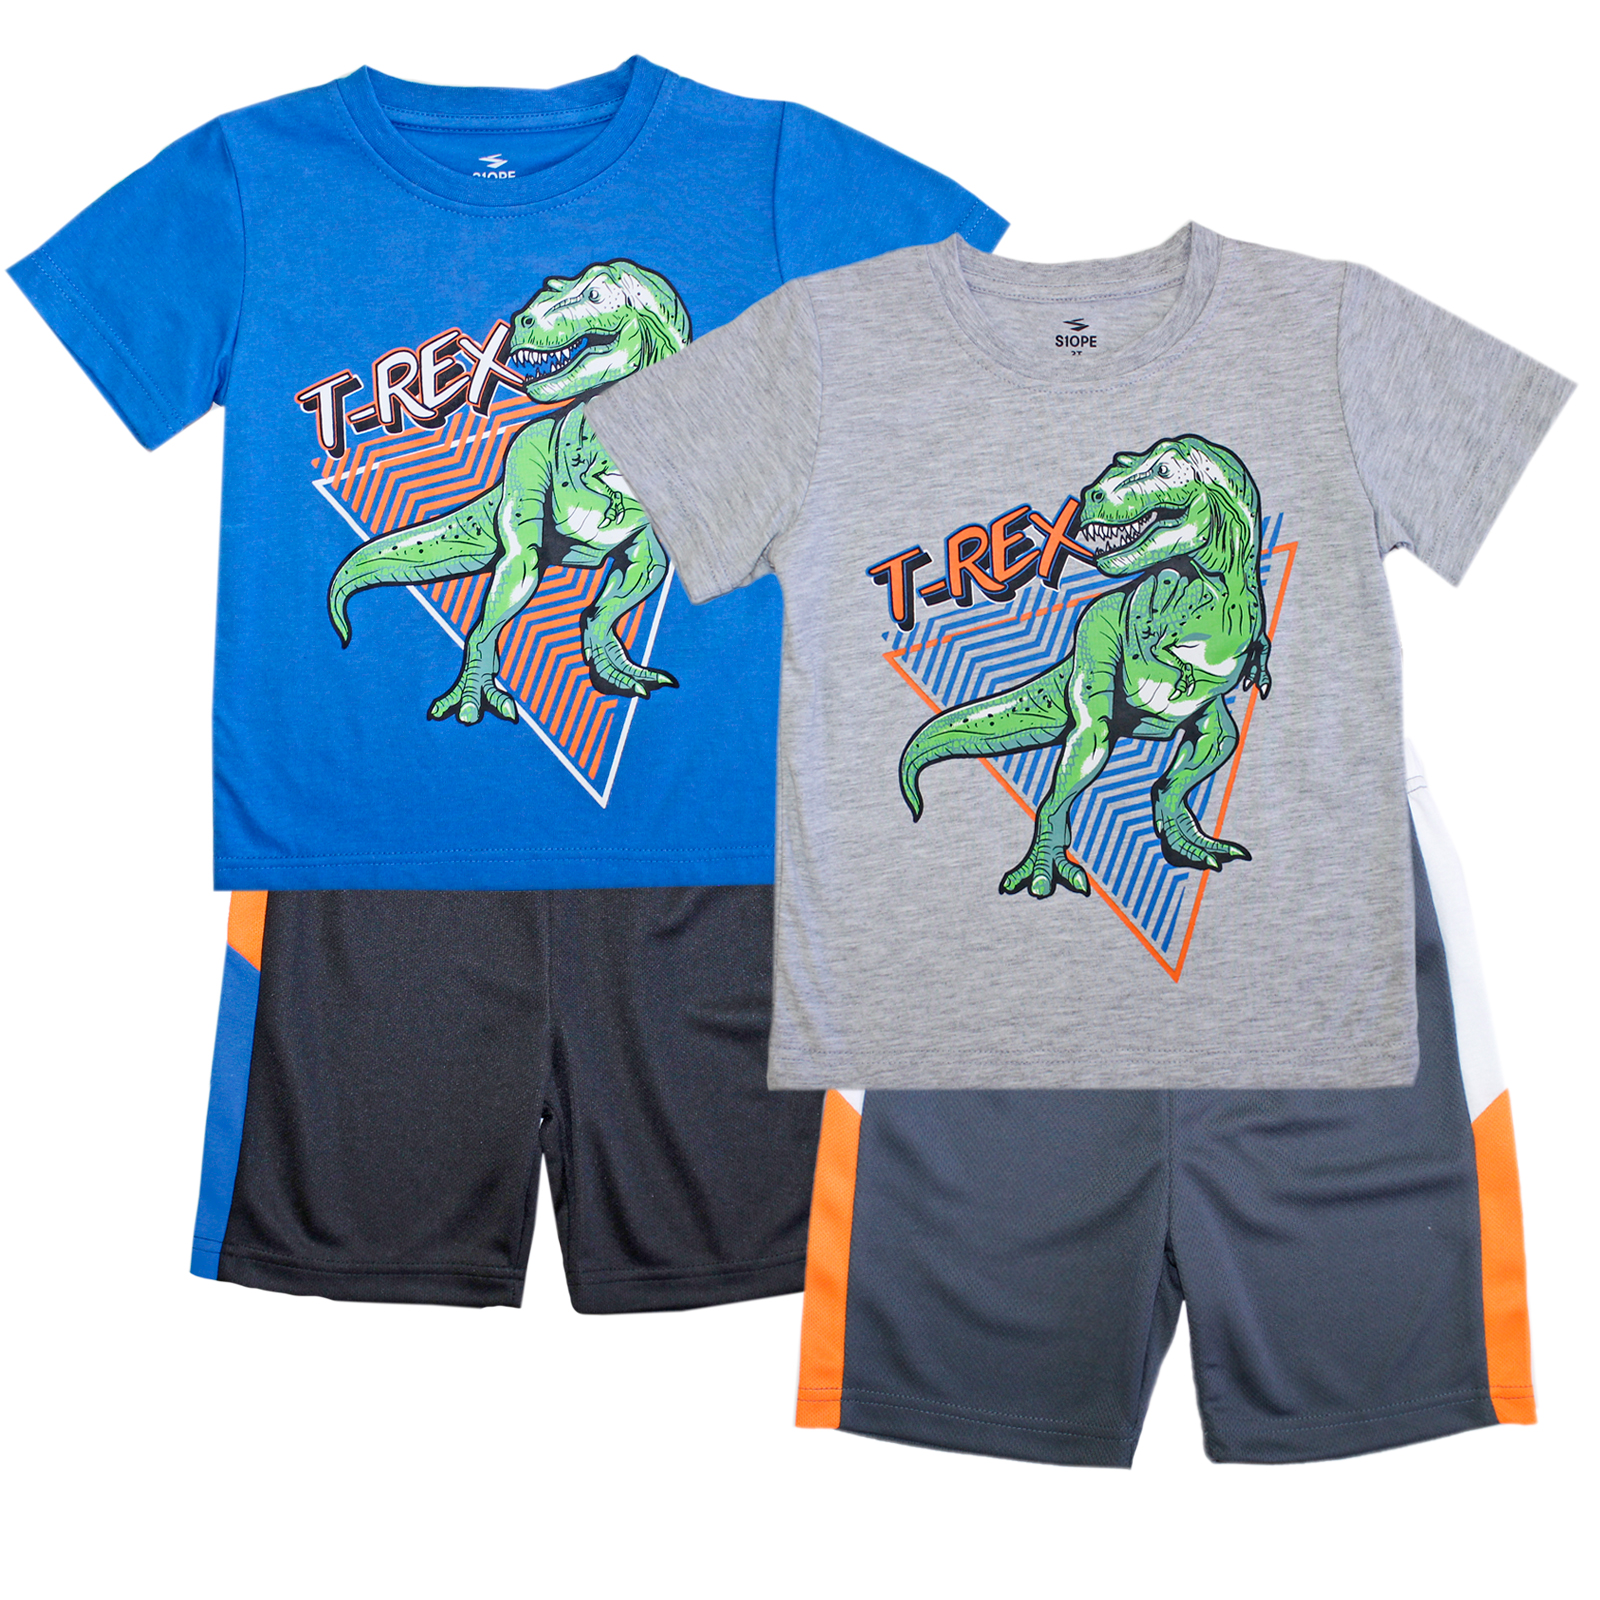 S1OPE Infant T-Rex Screen Athletic Mesh Short Sets